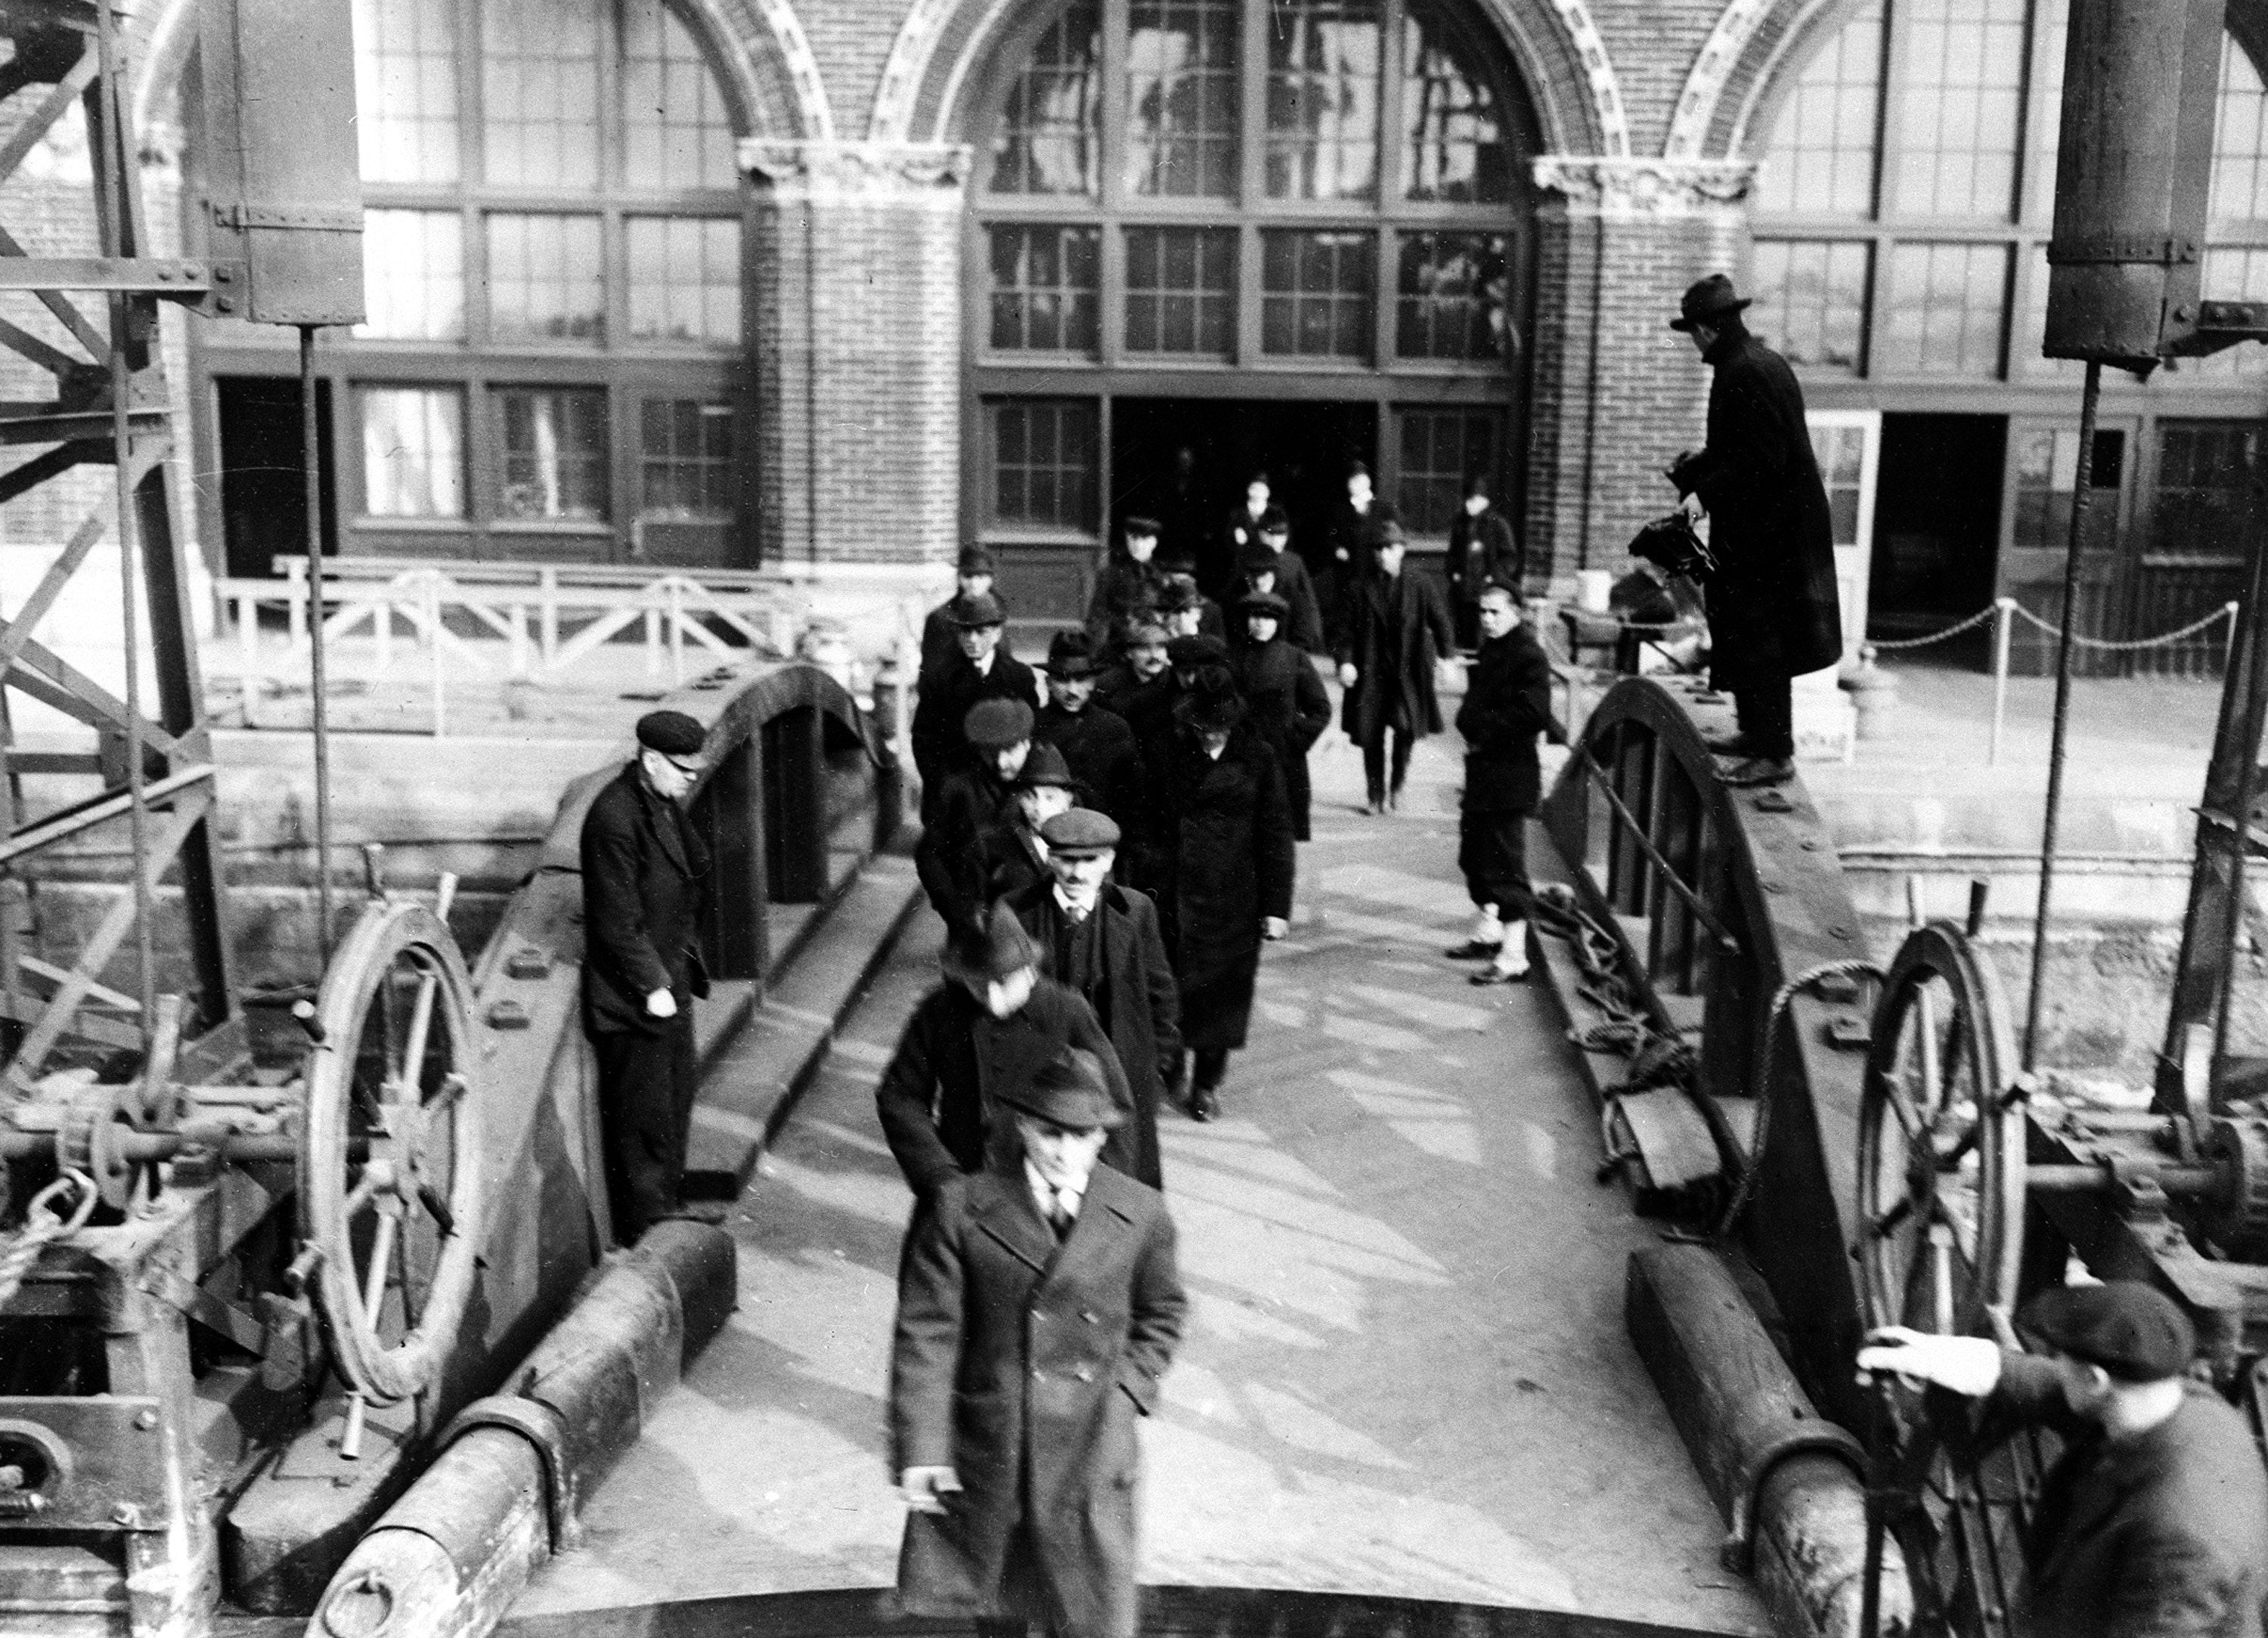 People who have been arrested in the federal drive against radicals are shown as they arrive at Ellis Island, in New York City, on April 7, 1920. Deportation hearings are held on the island to determine whether they are to stay in the United States. (AP Photo)